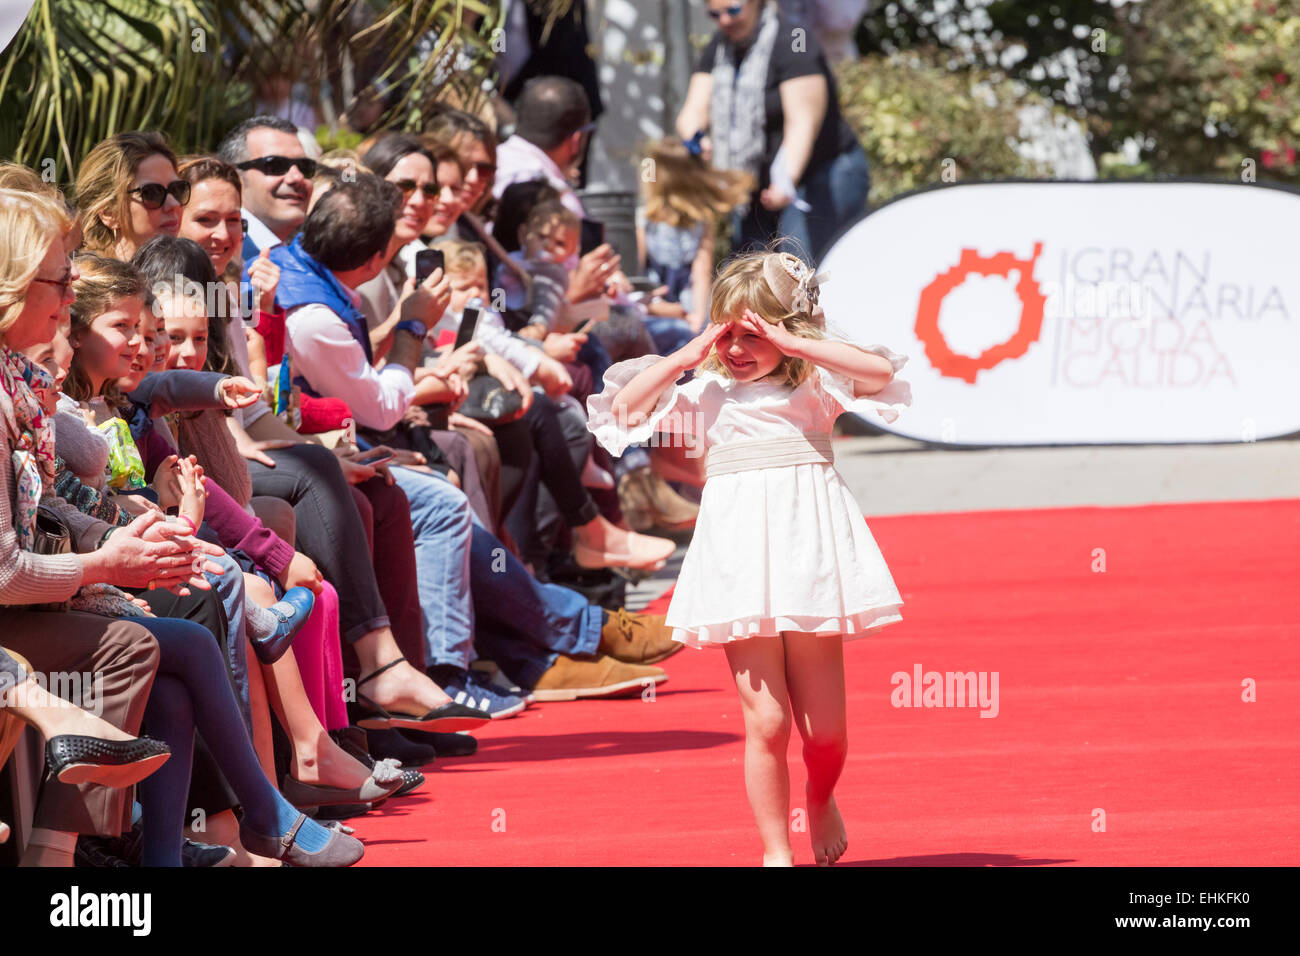 Young models modelling new range from 'It Child'on the catwalk at outdoor fashion show in Las palmas, Gran - Stock Image